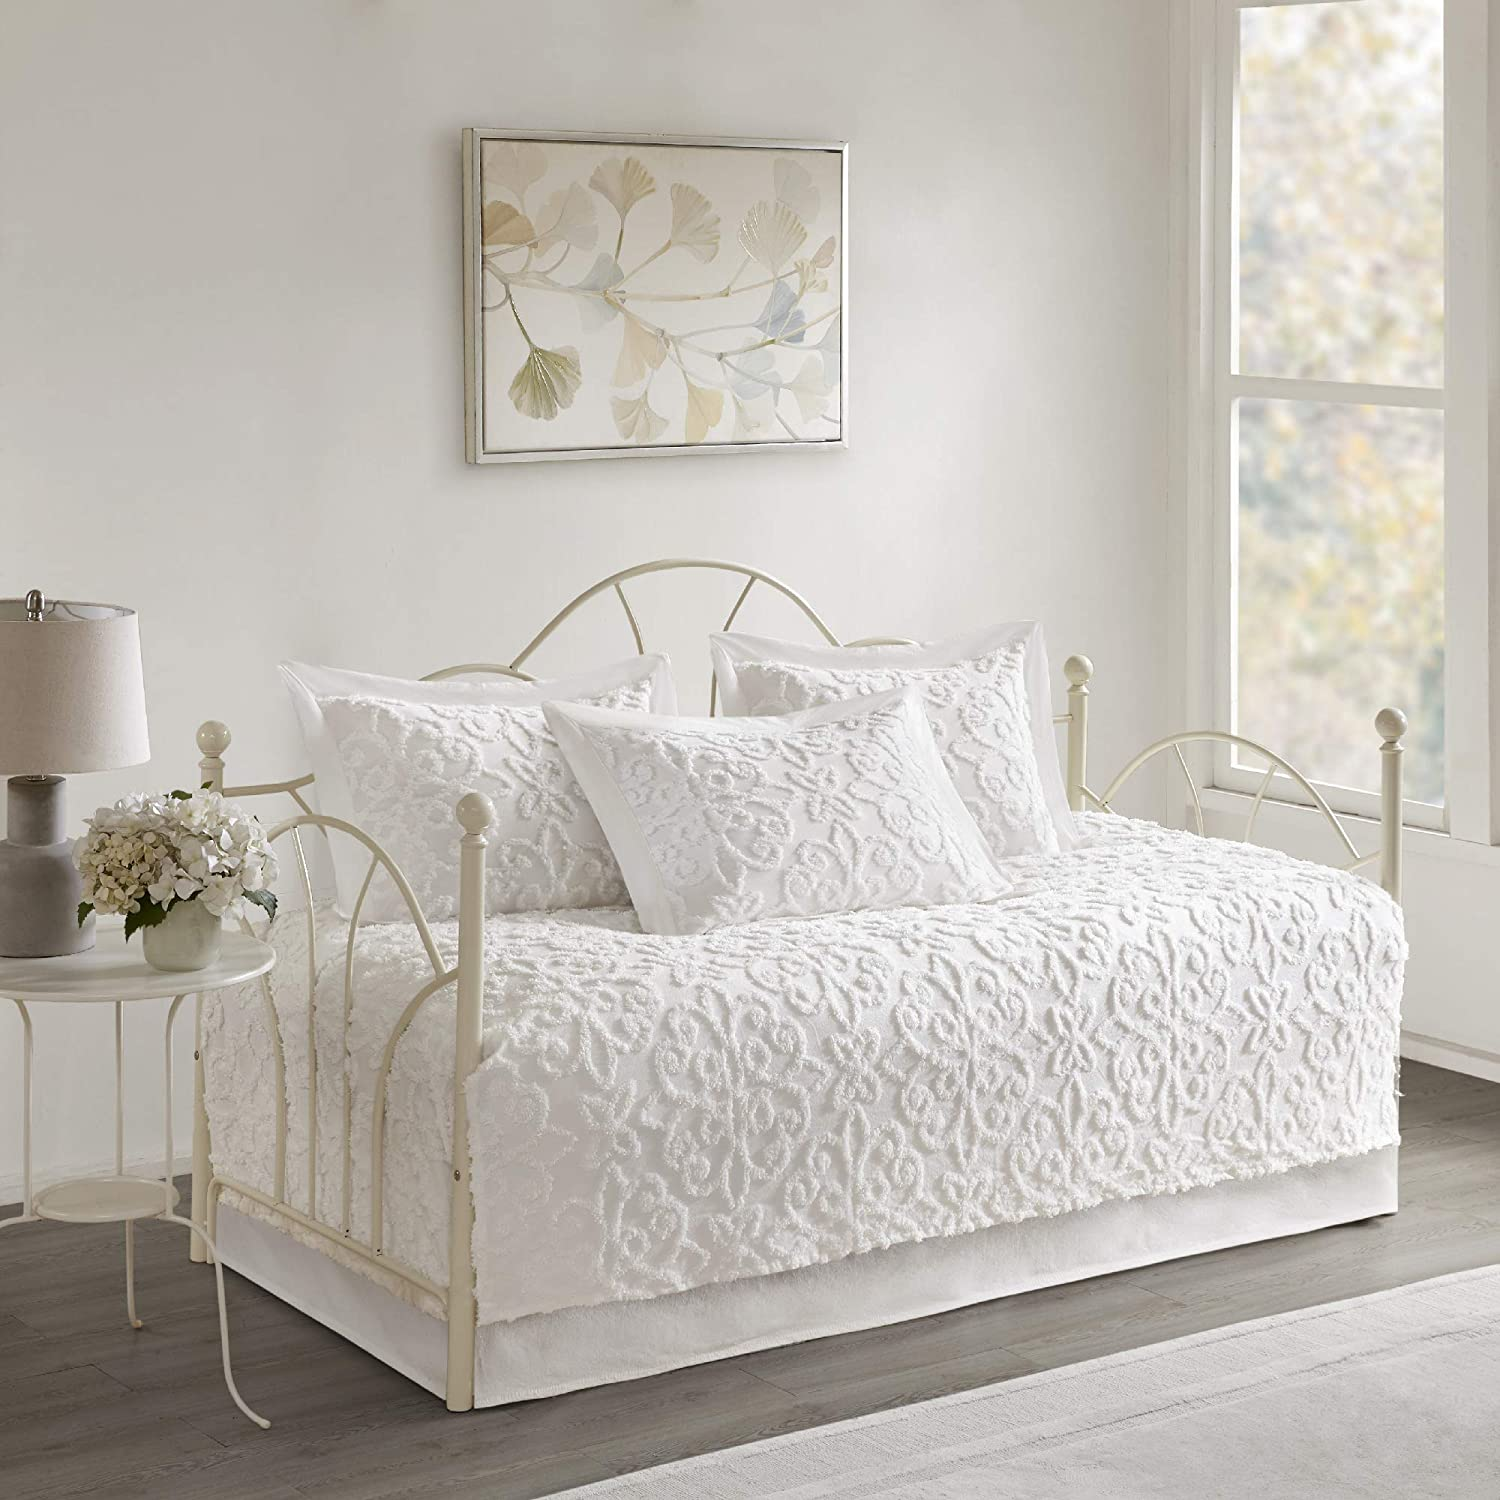 Madison Park Sabrina 5 Piece Tufted Cotton Chenille Quilt Set Coverlet Bedding, Daybed, Medallion Embroidery White